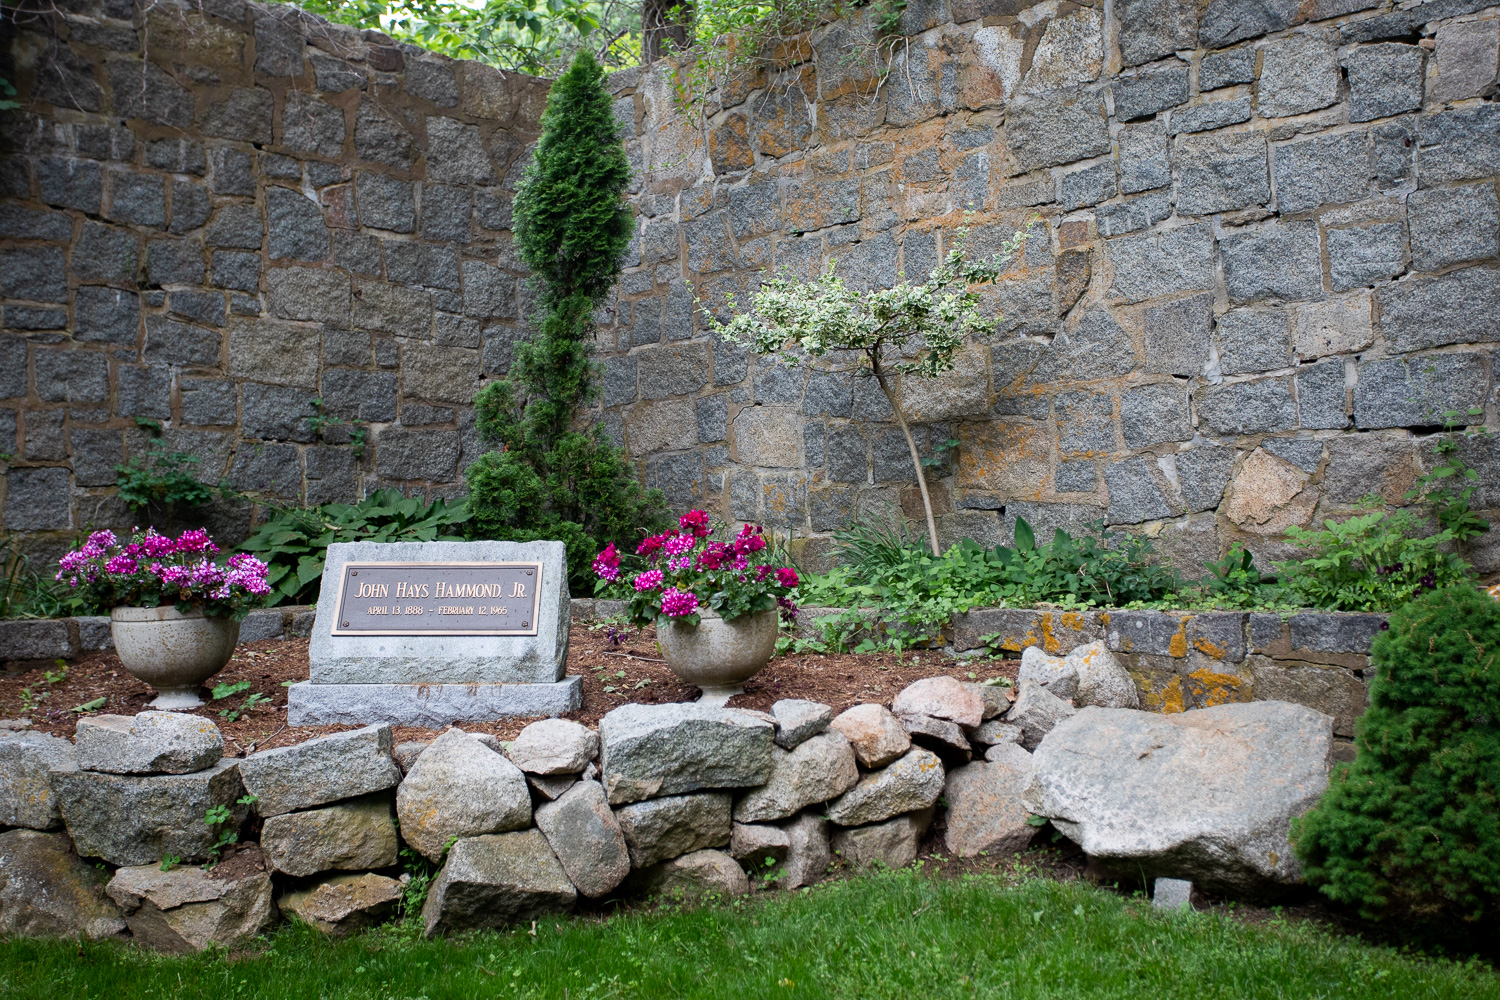 The final resting place of John Hays Hammond, Jr, located in front of the castle.It is said that poison ivy covers the site because Mr. Hammond did not want to be disturbed in his death.